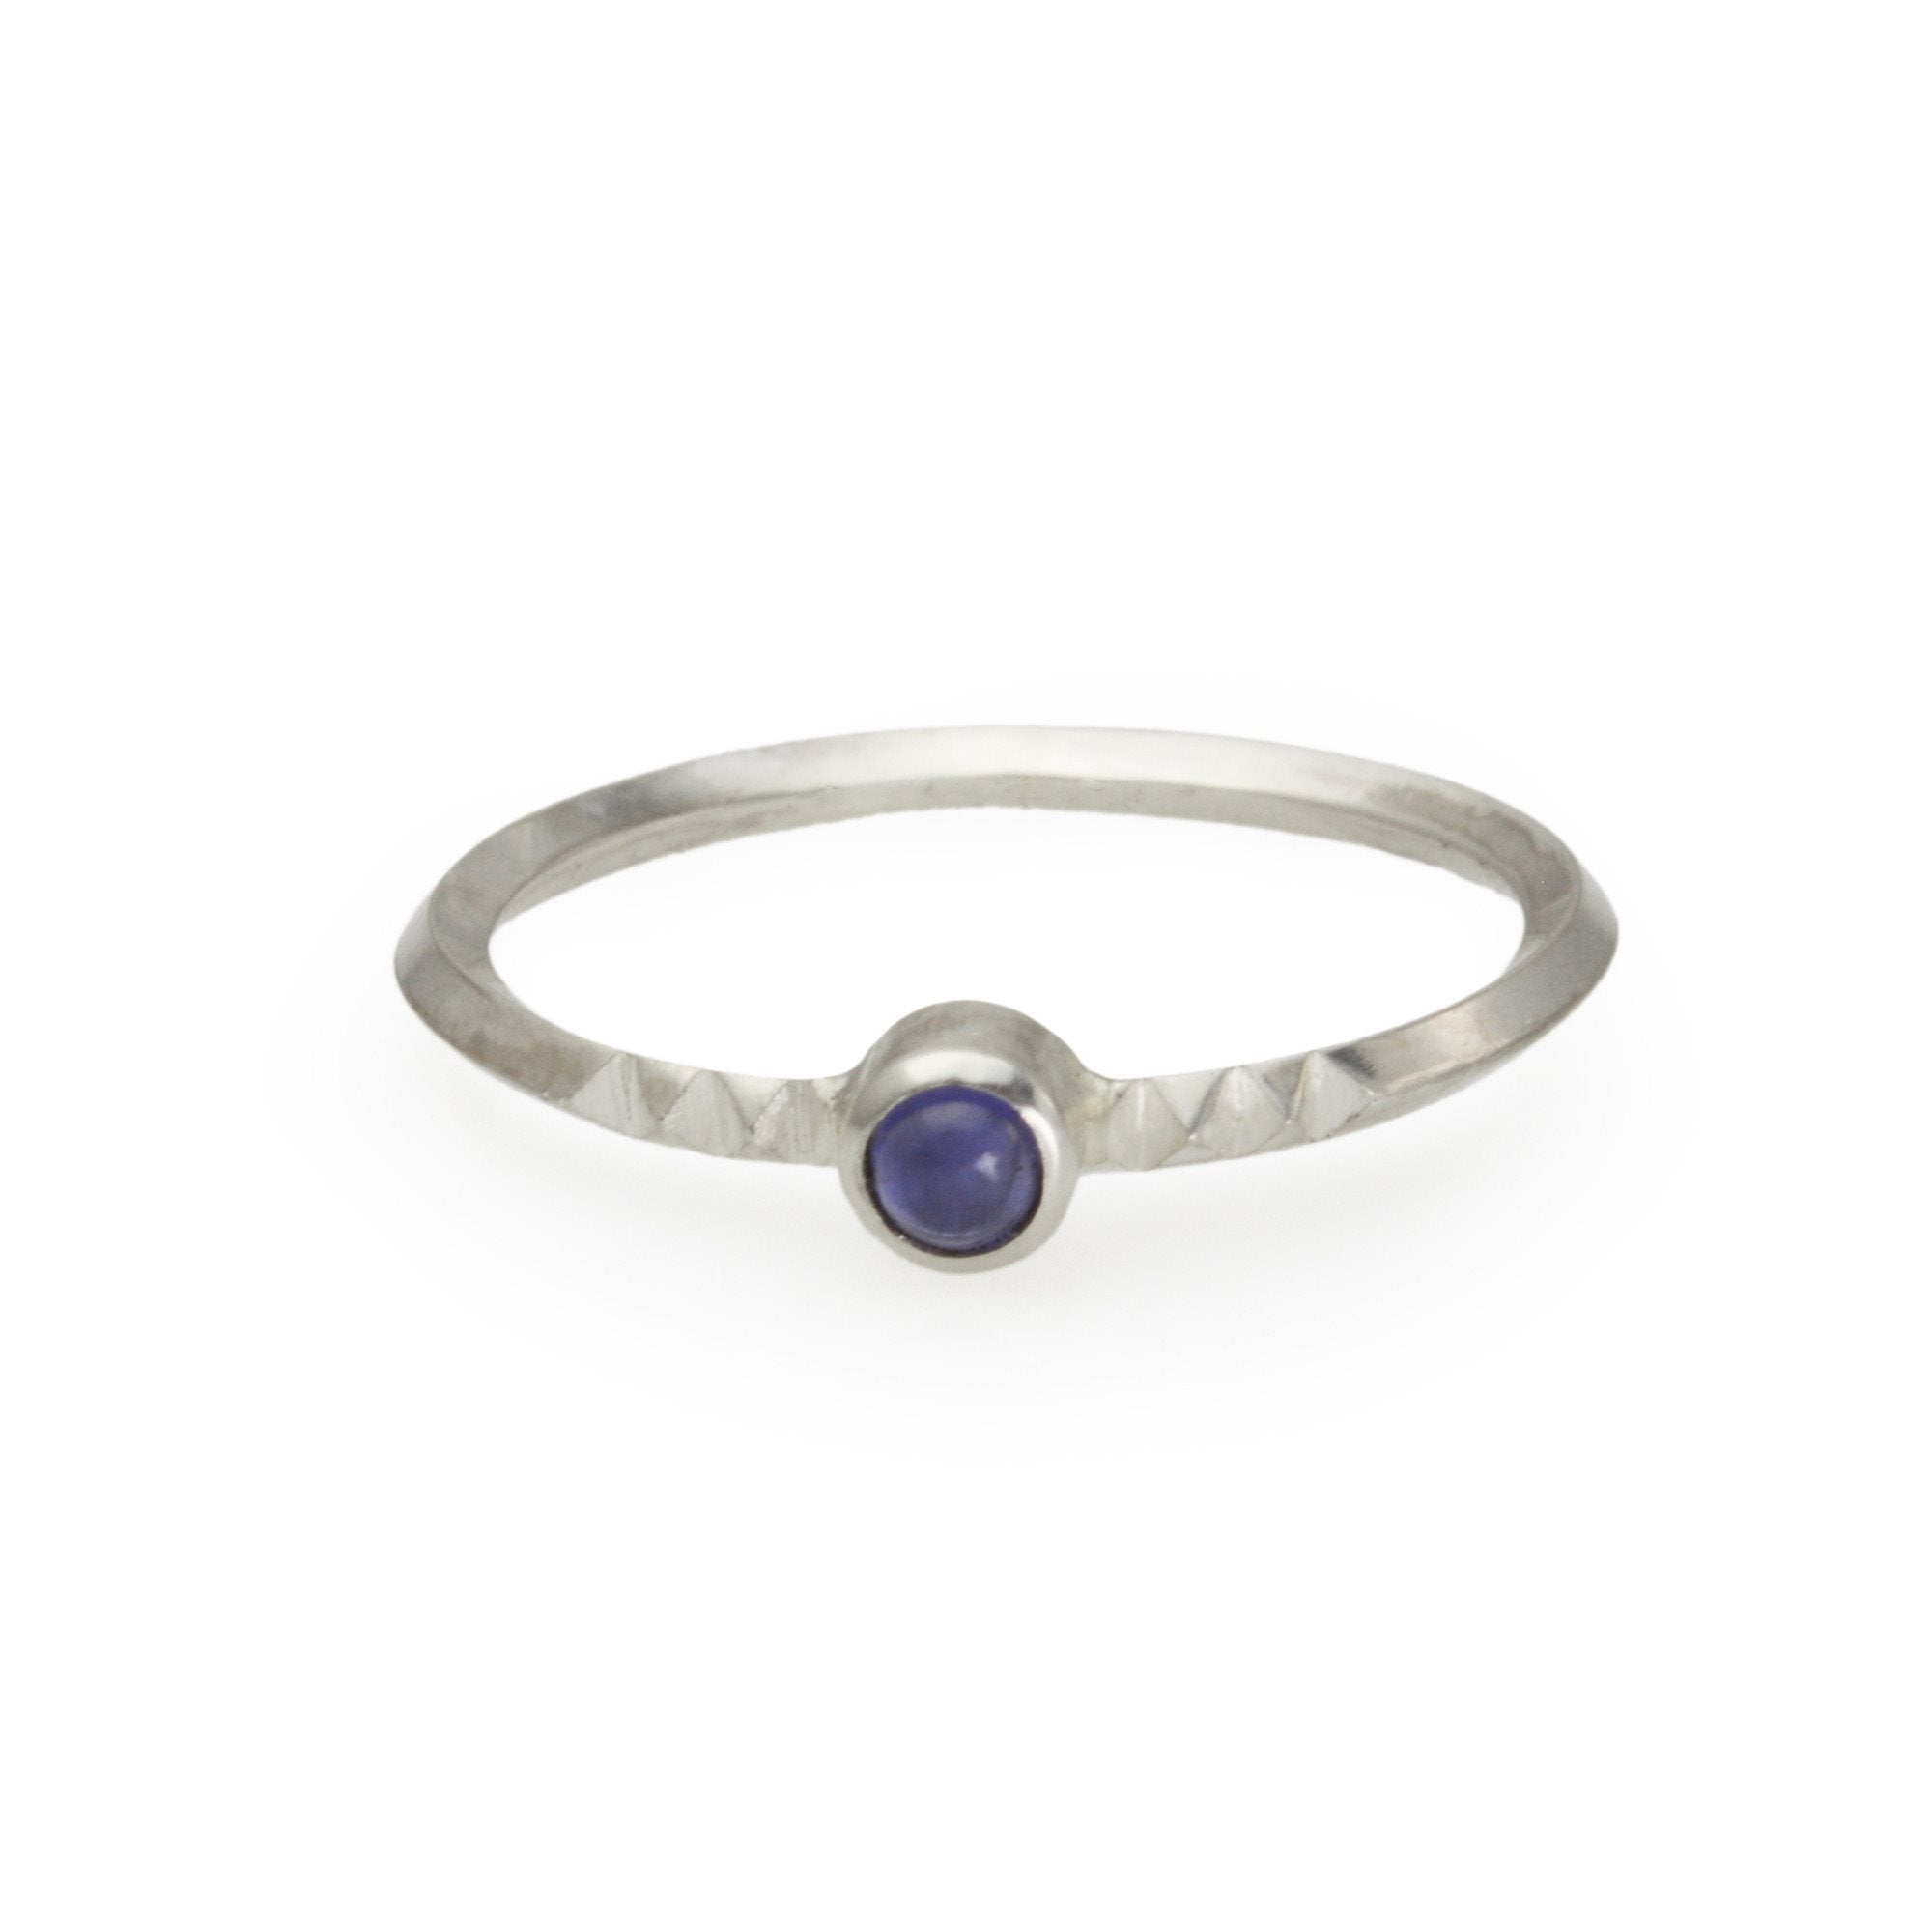 Metropolis Collection Stacking Ring in Sterling Silver and Amethyst